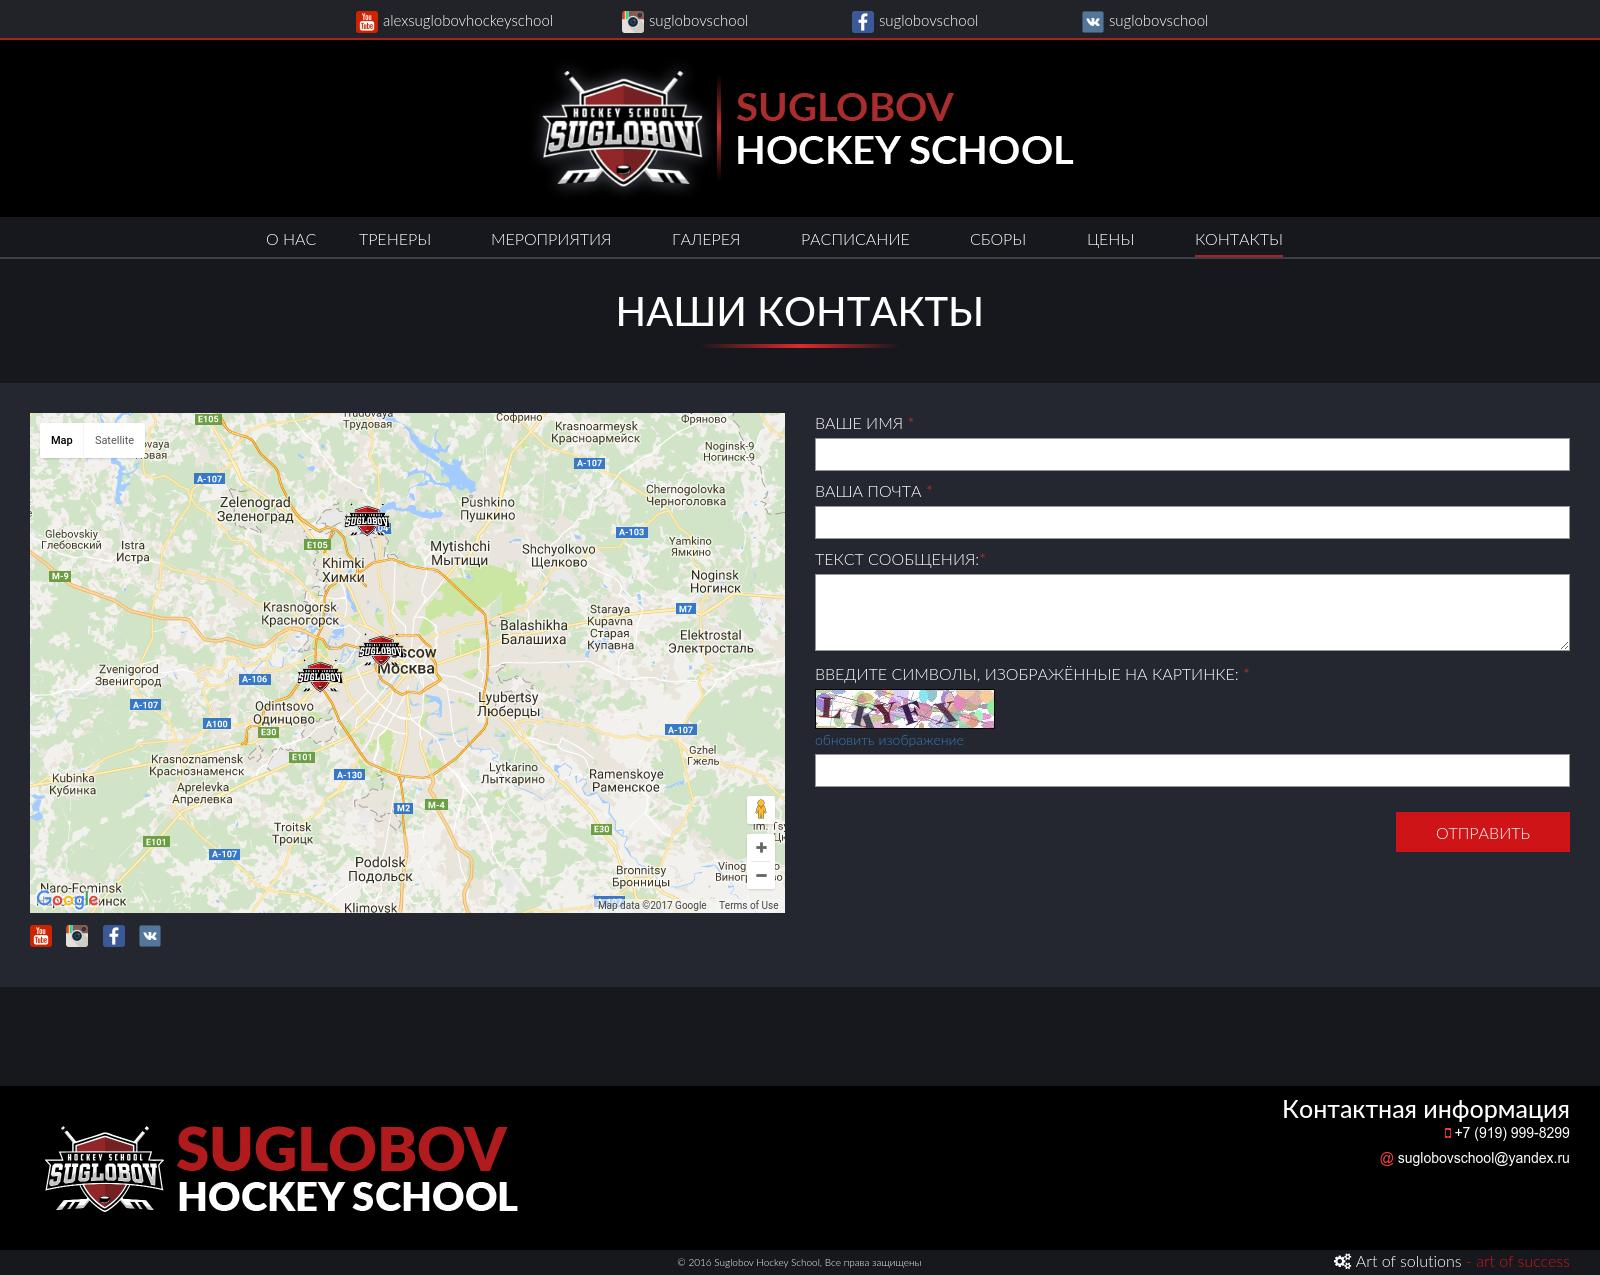 хоккейная школа суглобова -  suglobov hockey school